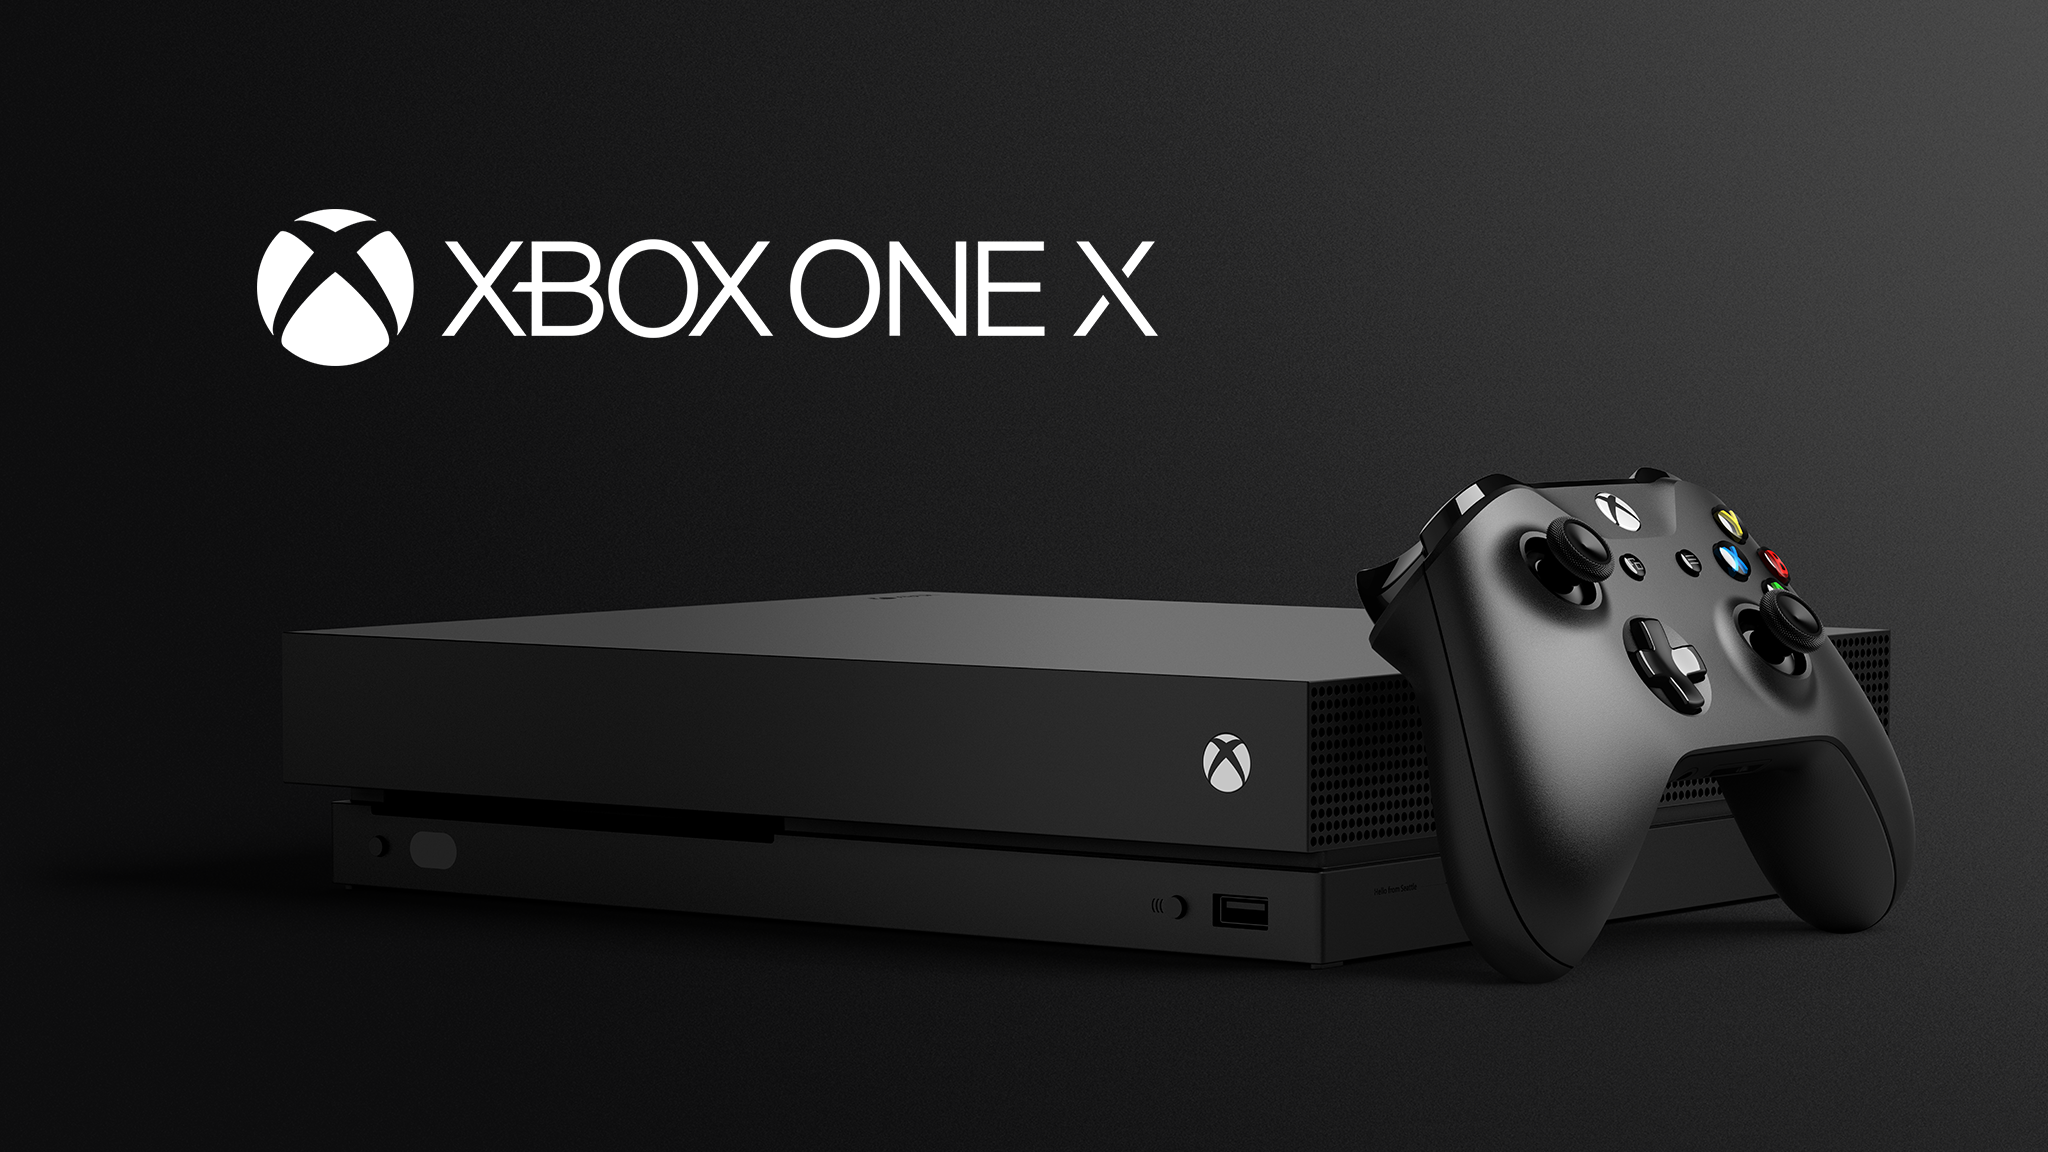 Xbox-One-X-Tilted-Black-Background-1.png